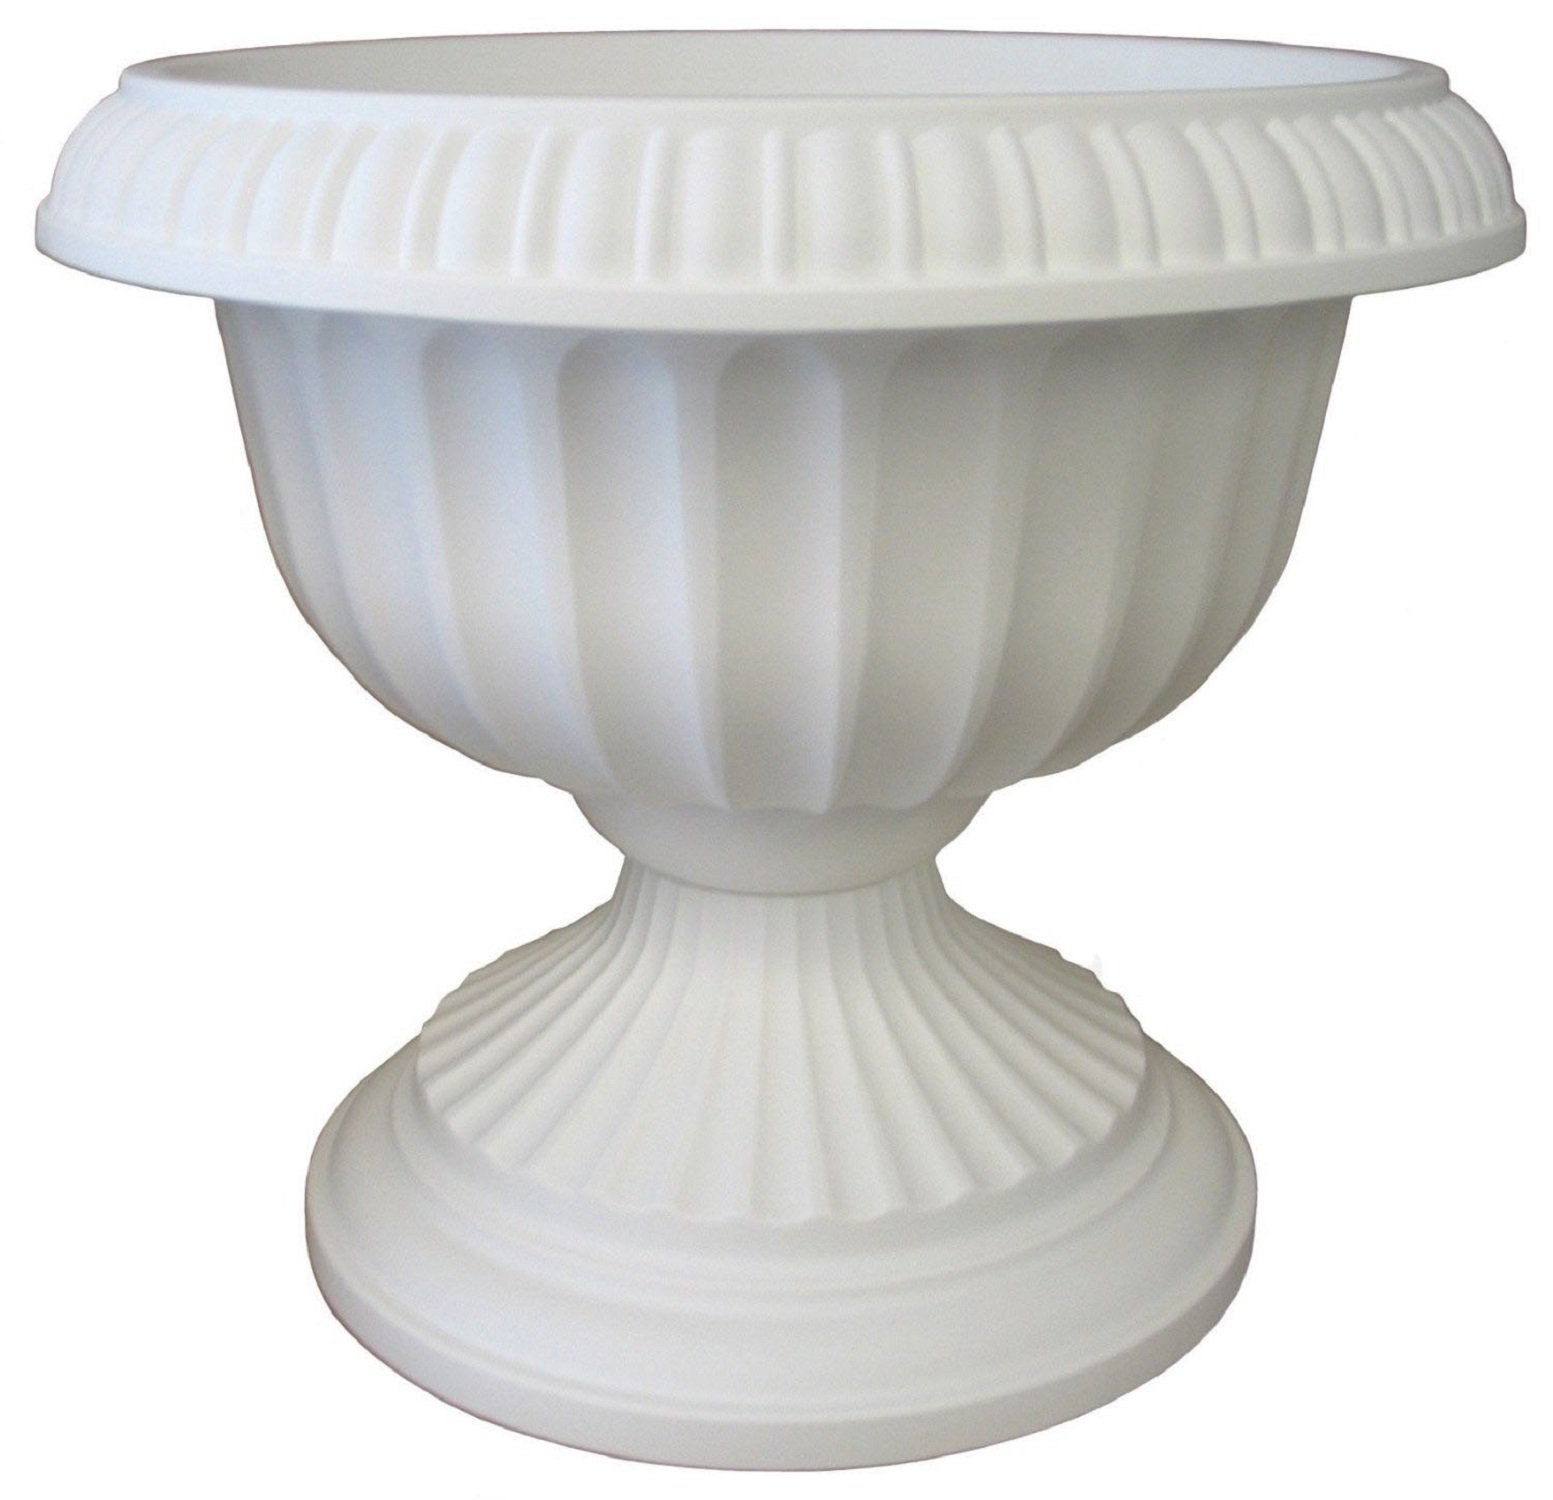 Bloem Grecian Urn Planter, 12'', White by Bloem